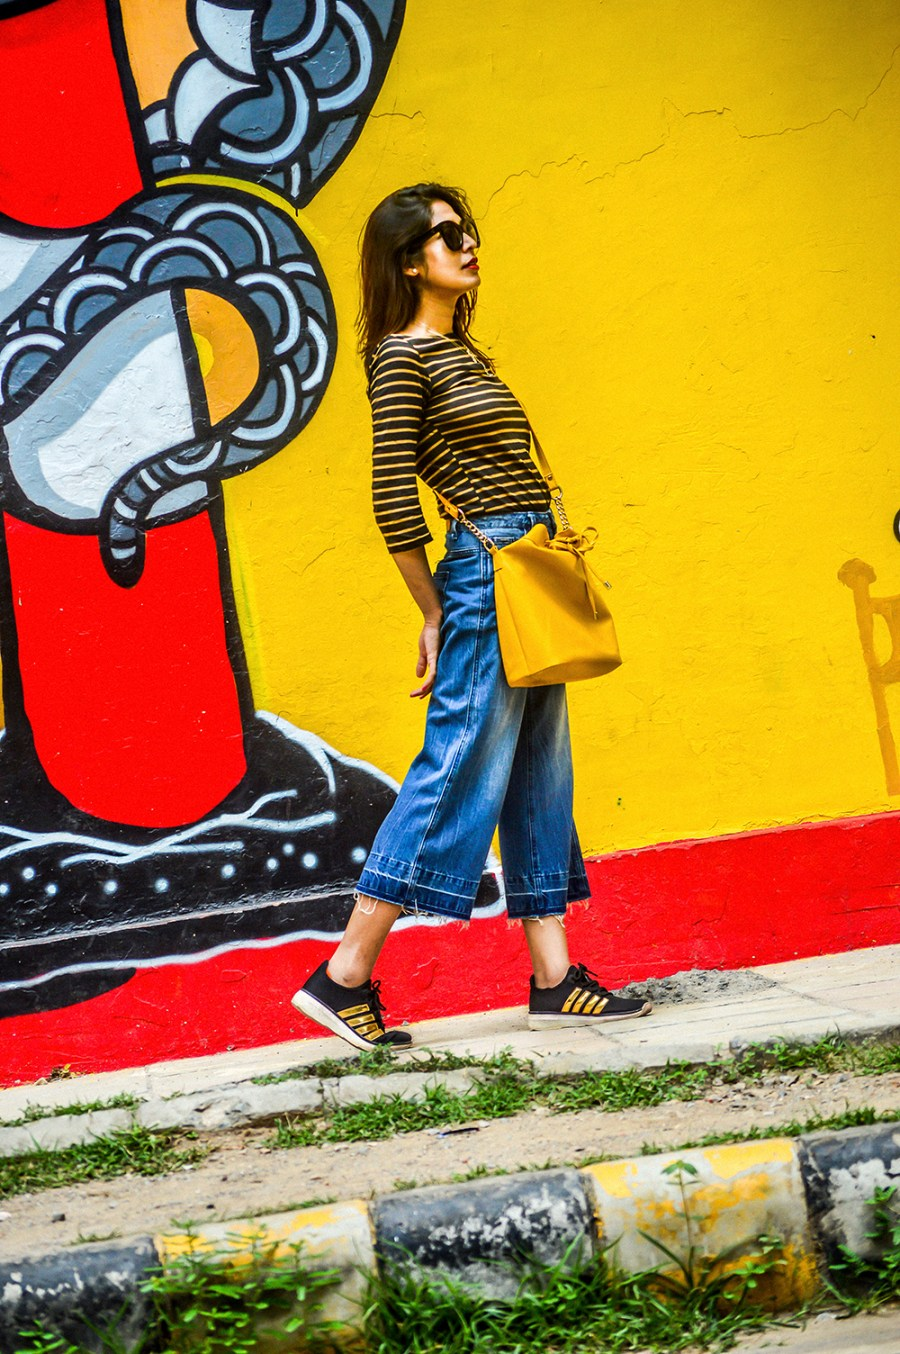 Denim, Culottes, Yellow Bag, Delhi Trip, Striped Top, Fashion Photography, Motivation-2